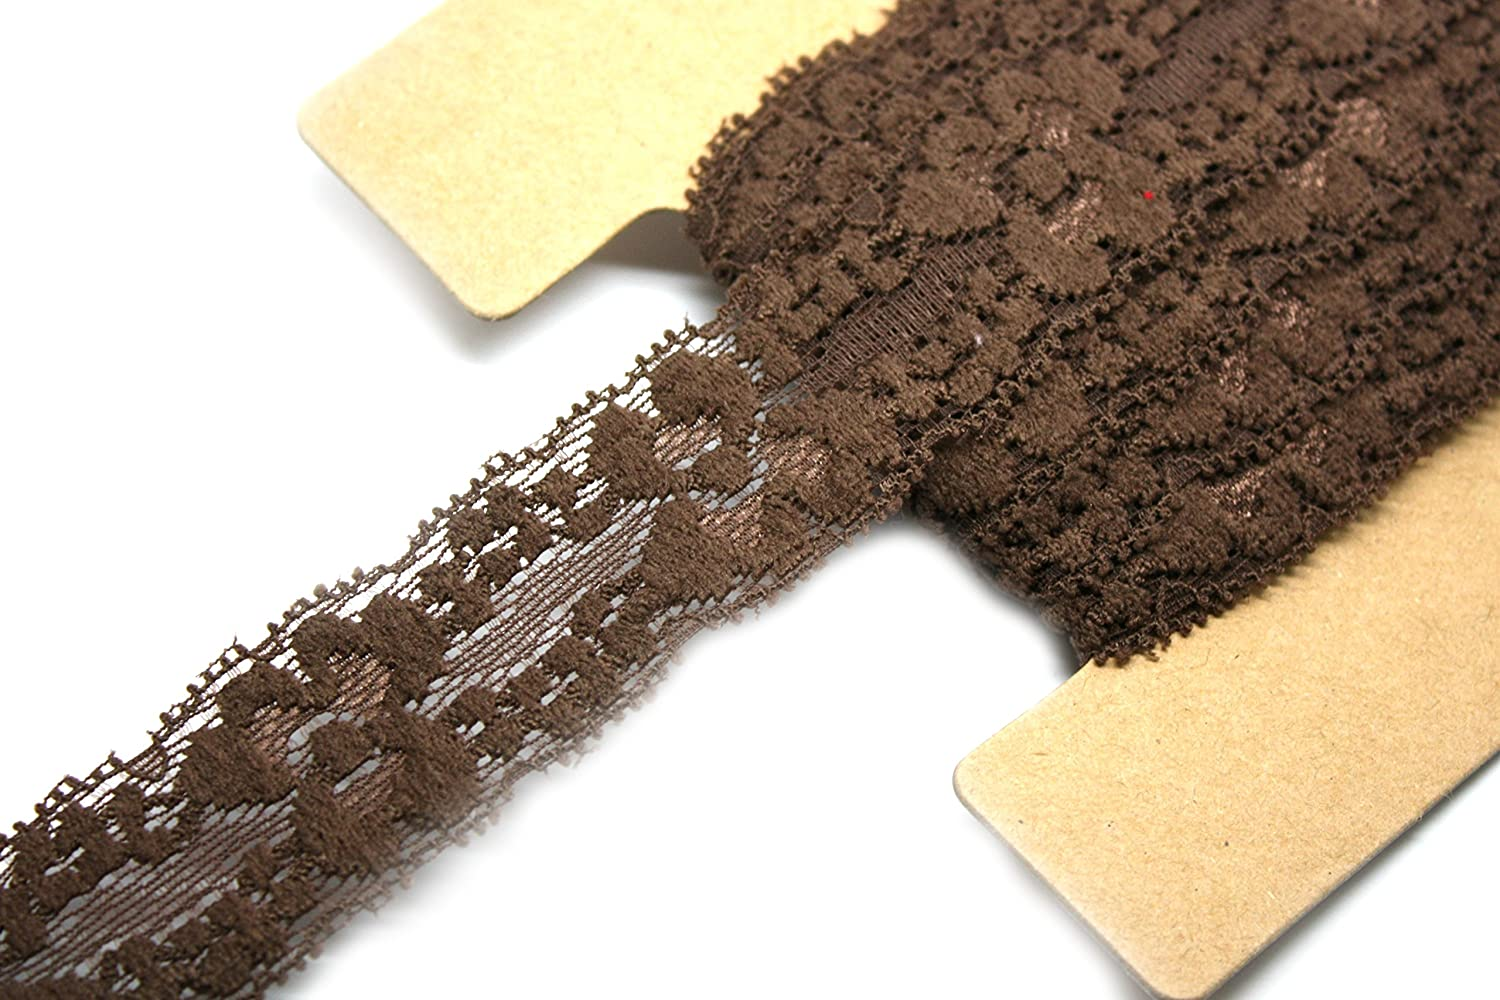 Brown 12 Yards 1 Inch Wide JLIKA Stretch Lace Elastic Fabric Trim Lace for Headbands Weddings